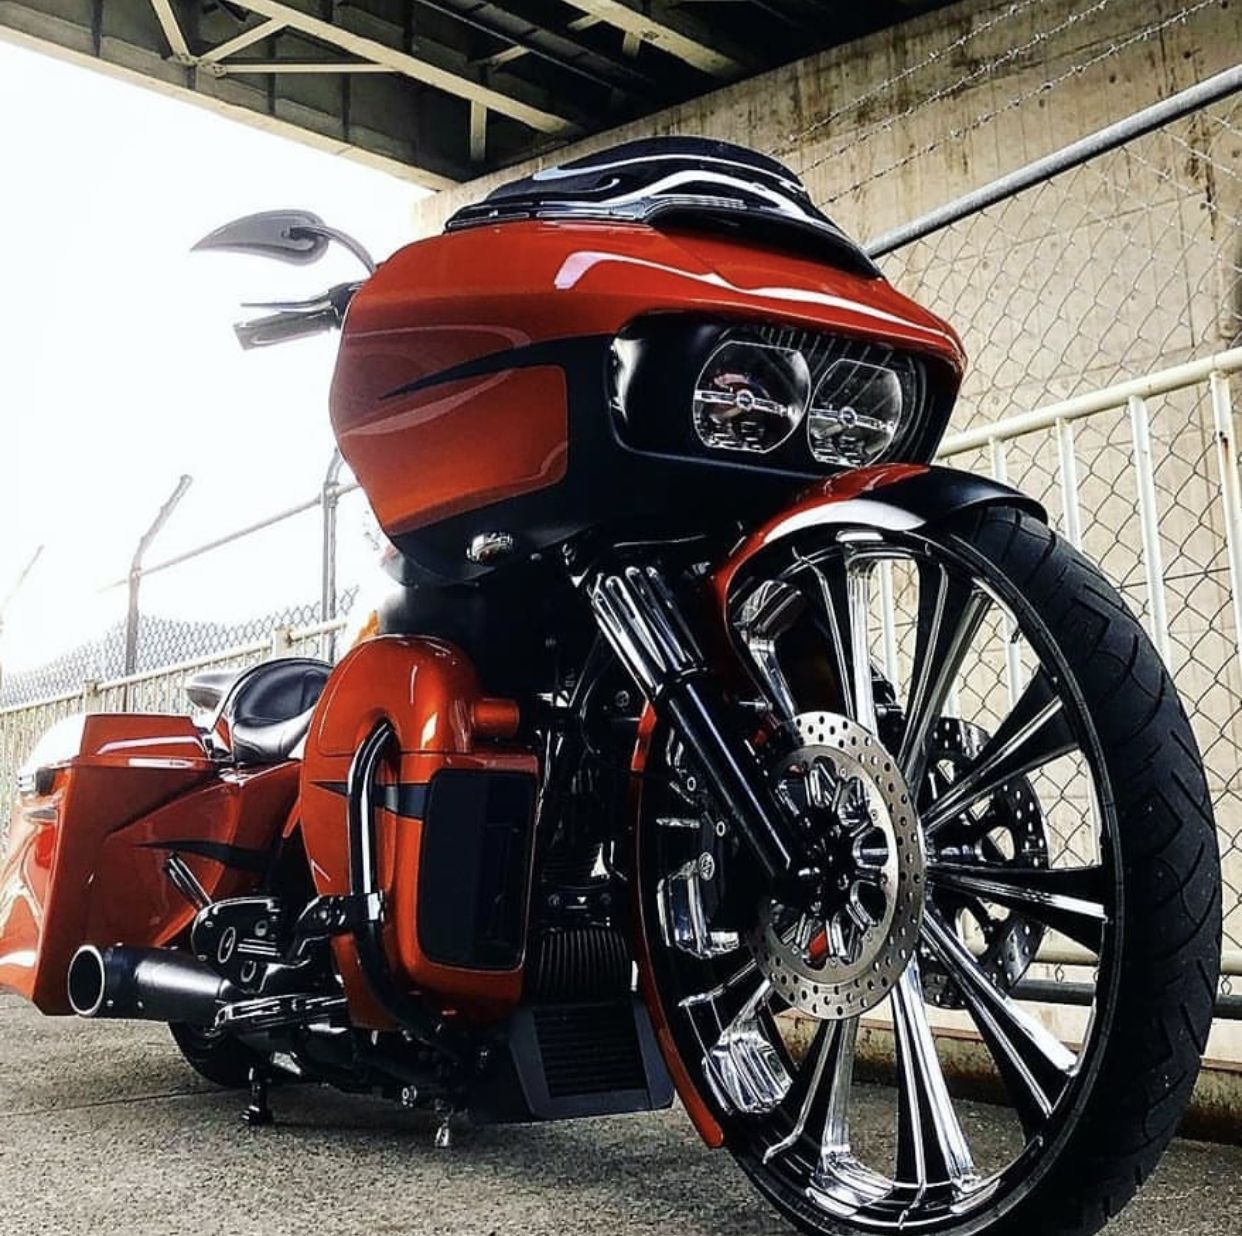 Pin by French Fuqua on Baggers in 2020 Harley road glide